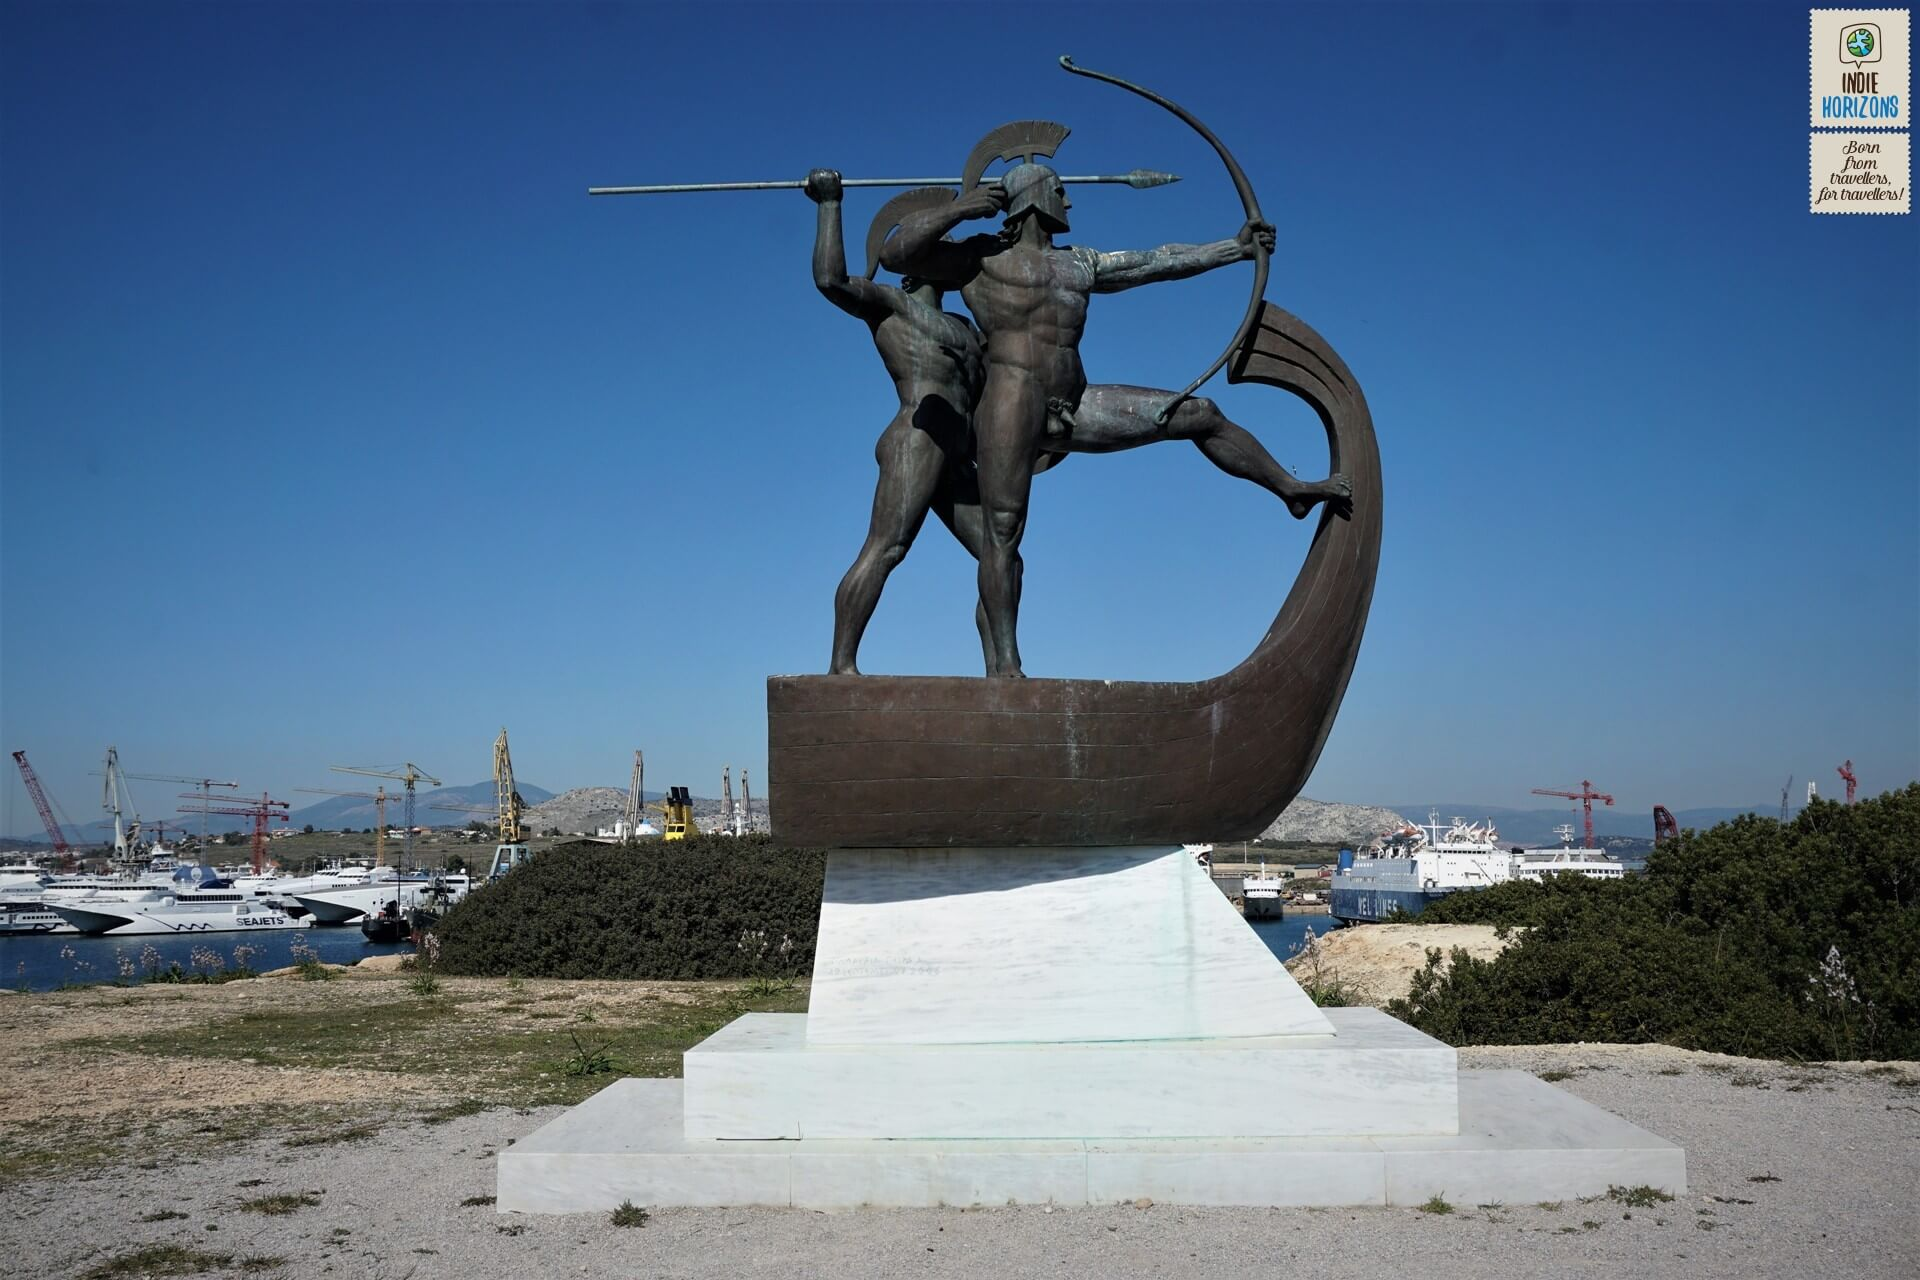 Salamis island is mostly famous for its ancient naval battle.